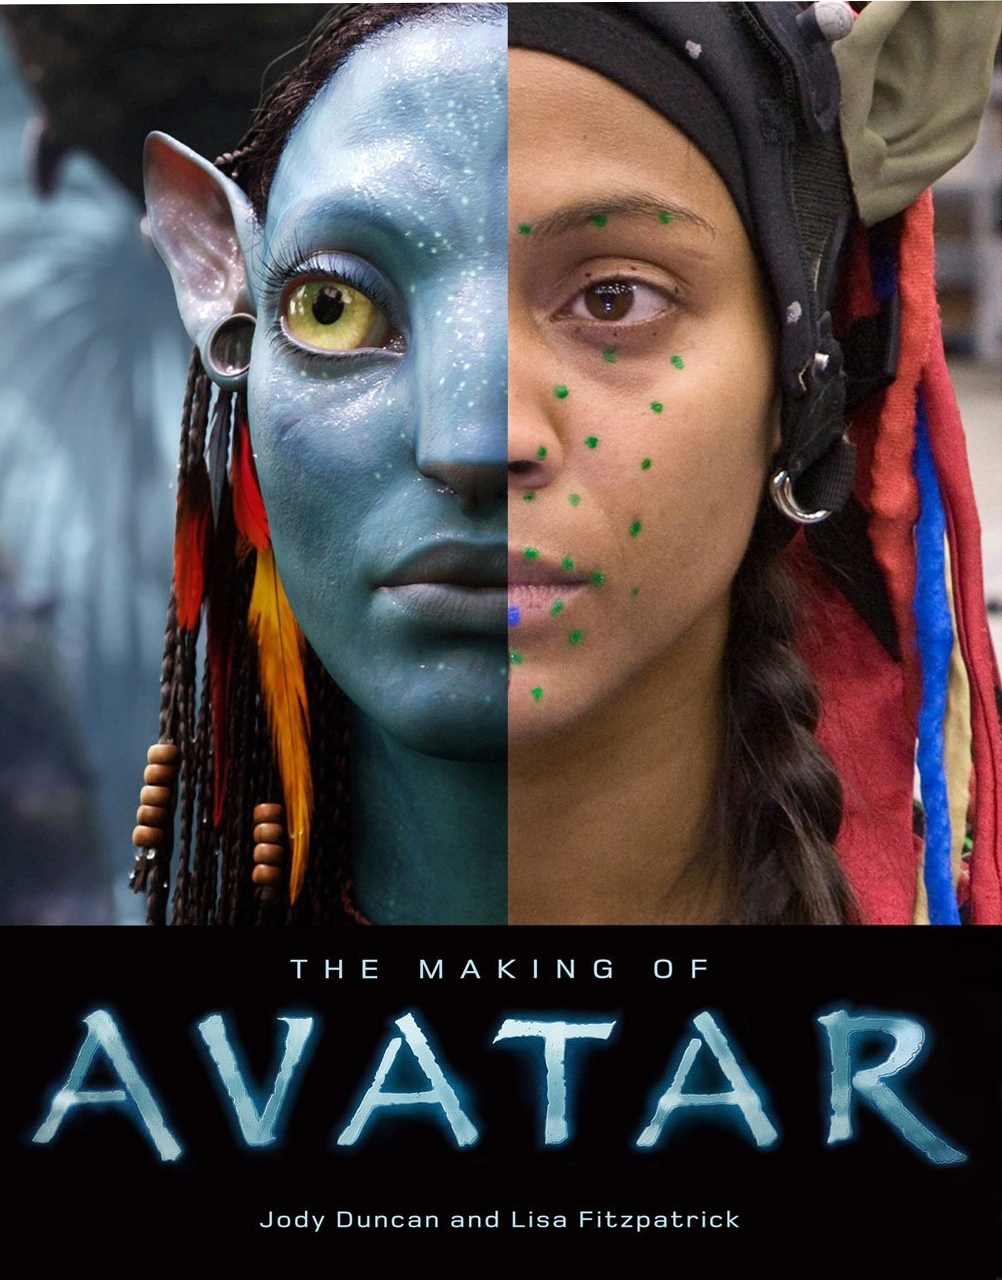 Did avatar porb that nigger